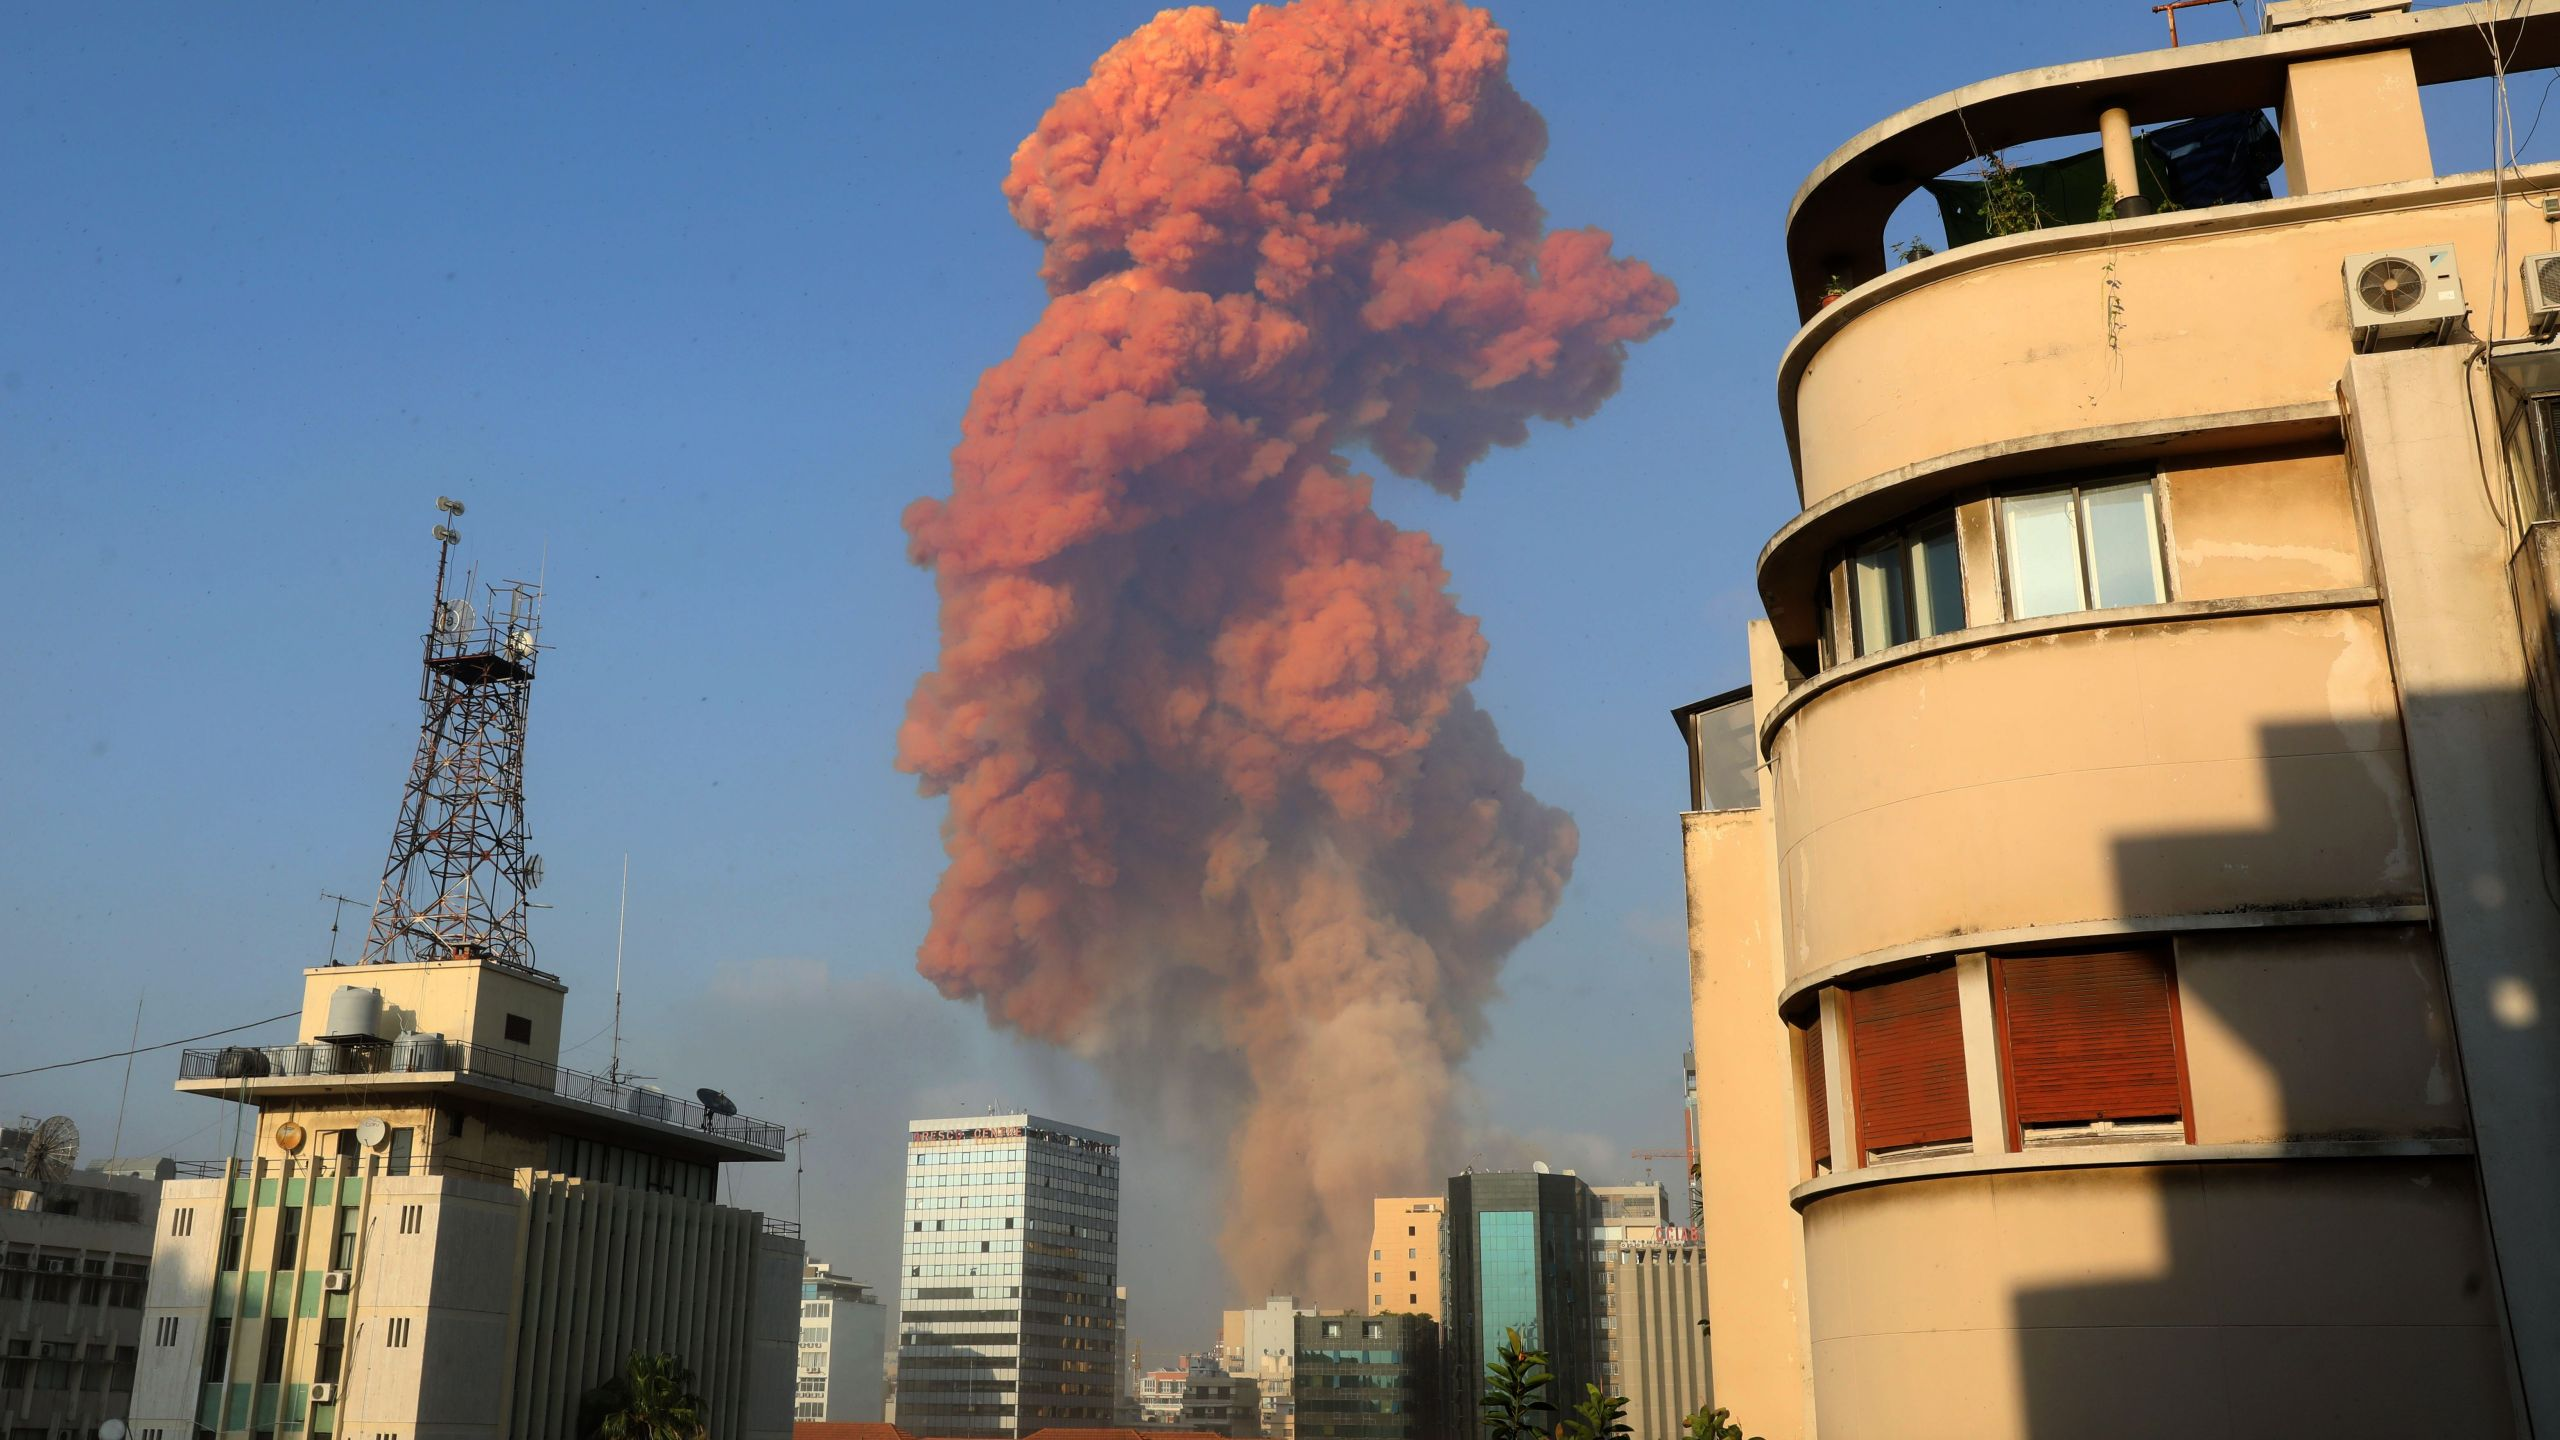 A picture shows the scene of an explosion in Beirut.